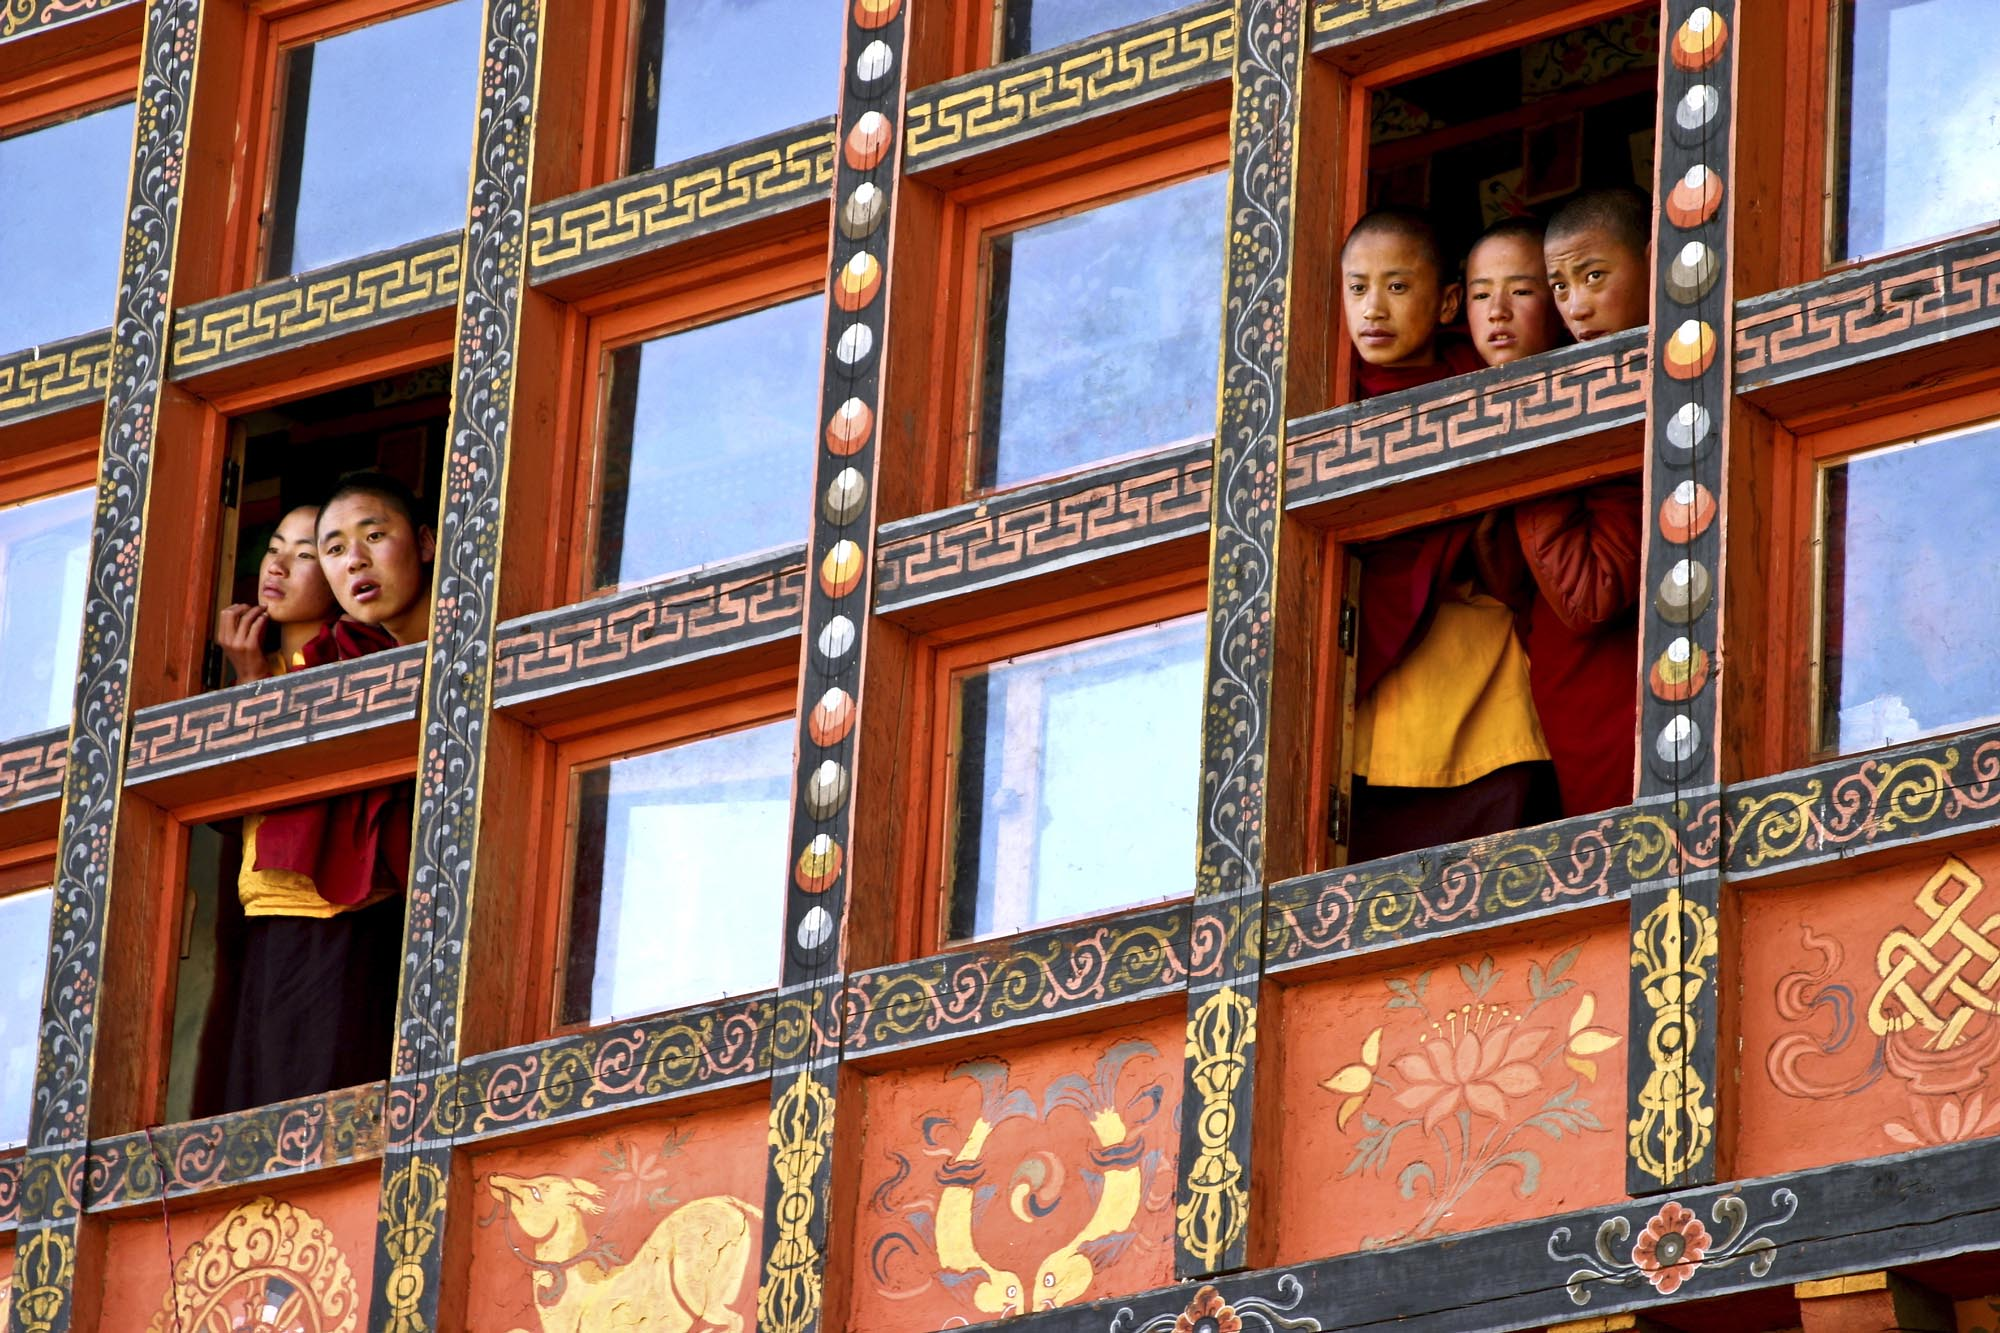 Monks_in_windows-JM.jpg